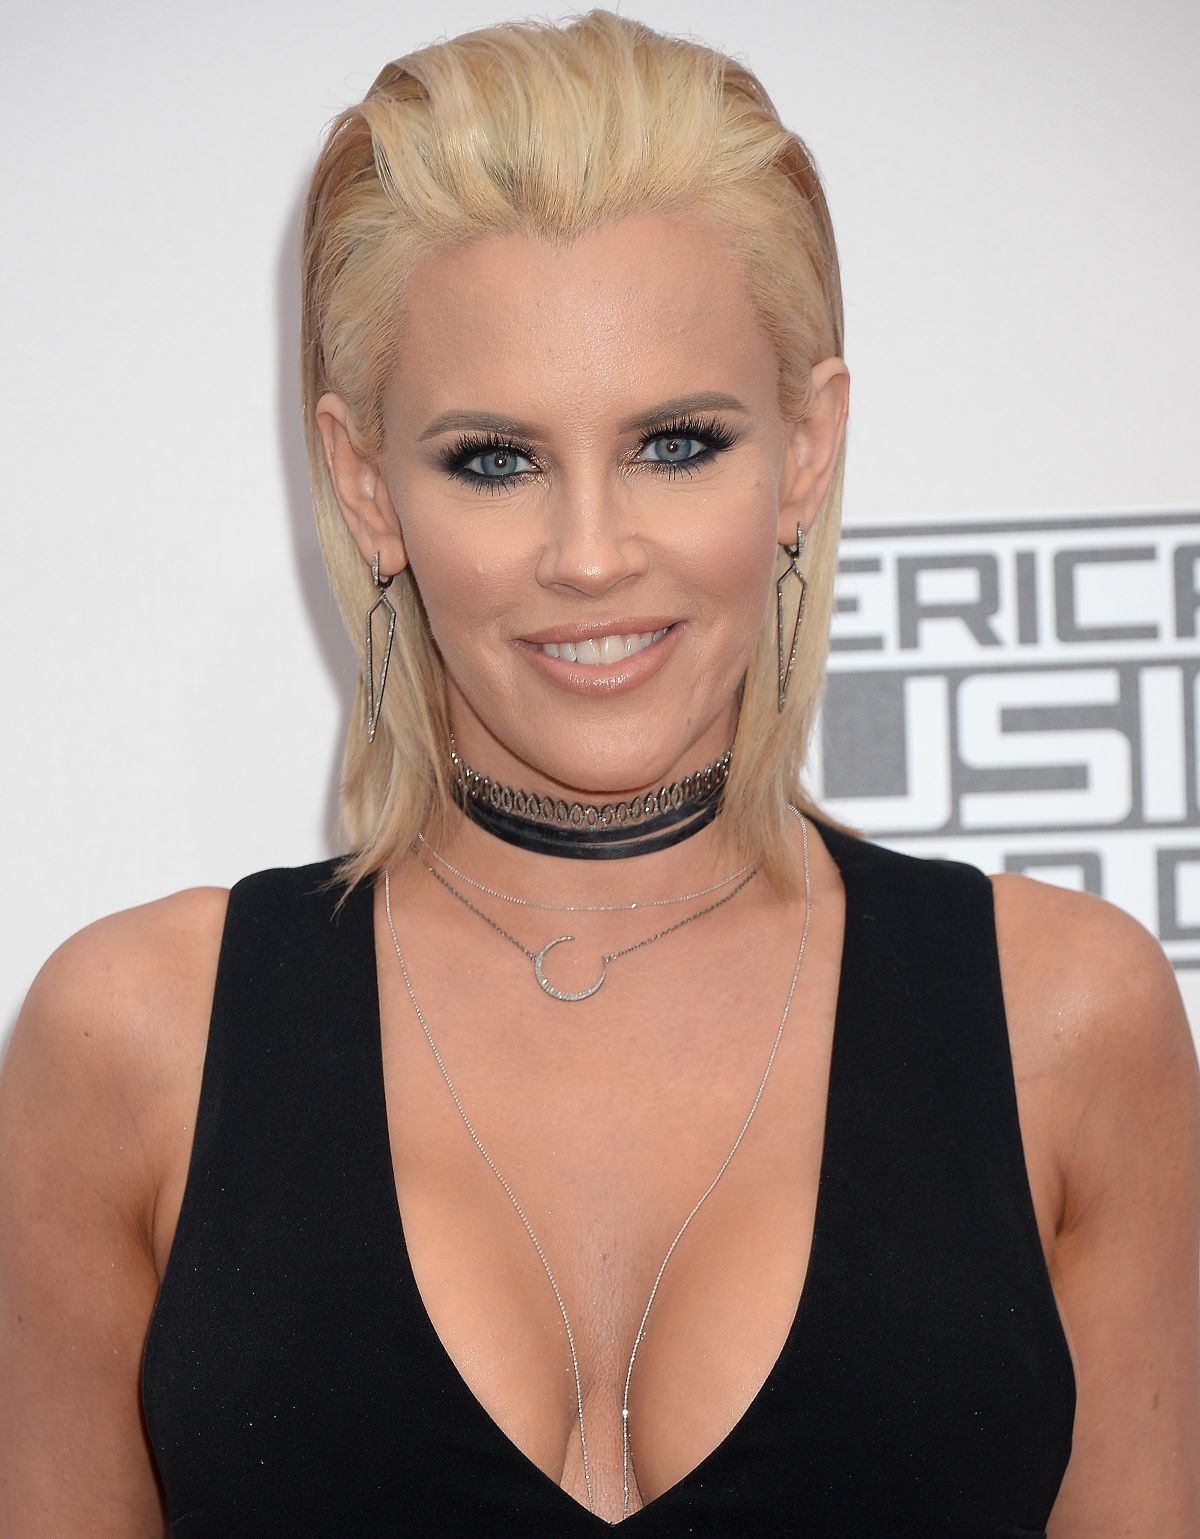 Jenny Mccarthy Latest News Images And Photos Crypticimages